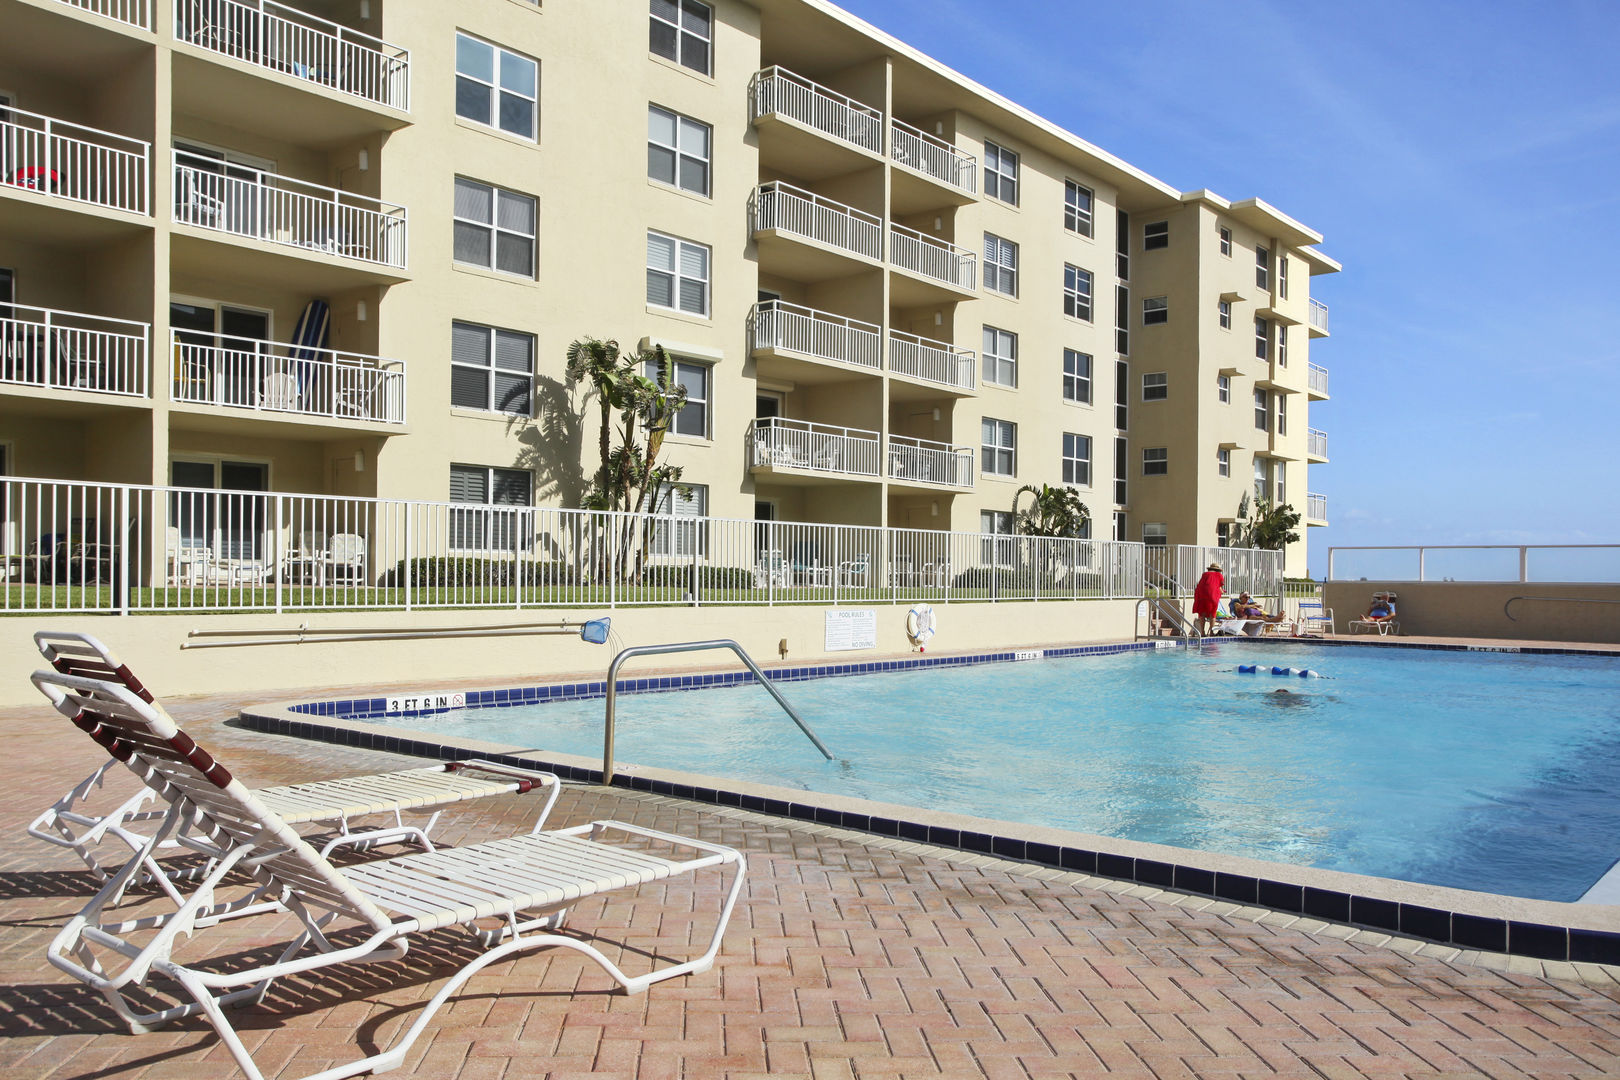 Vacation rental in New Smyrna Beach with 2 bedrooms and pool